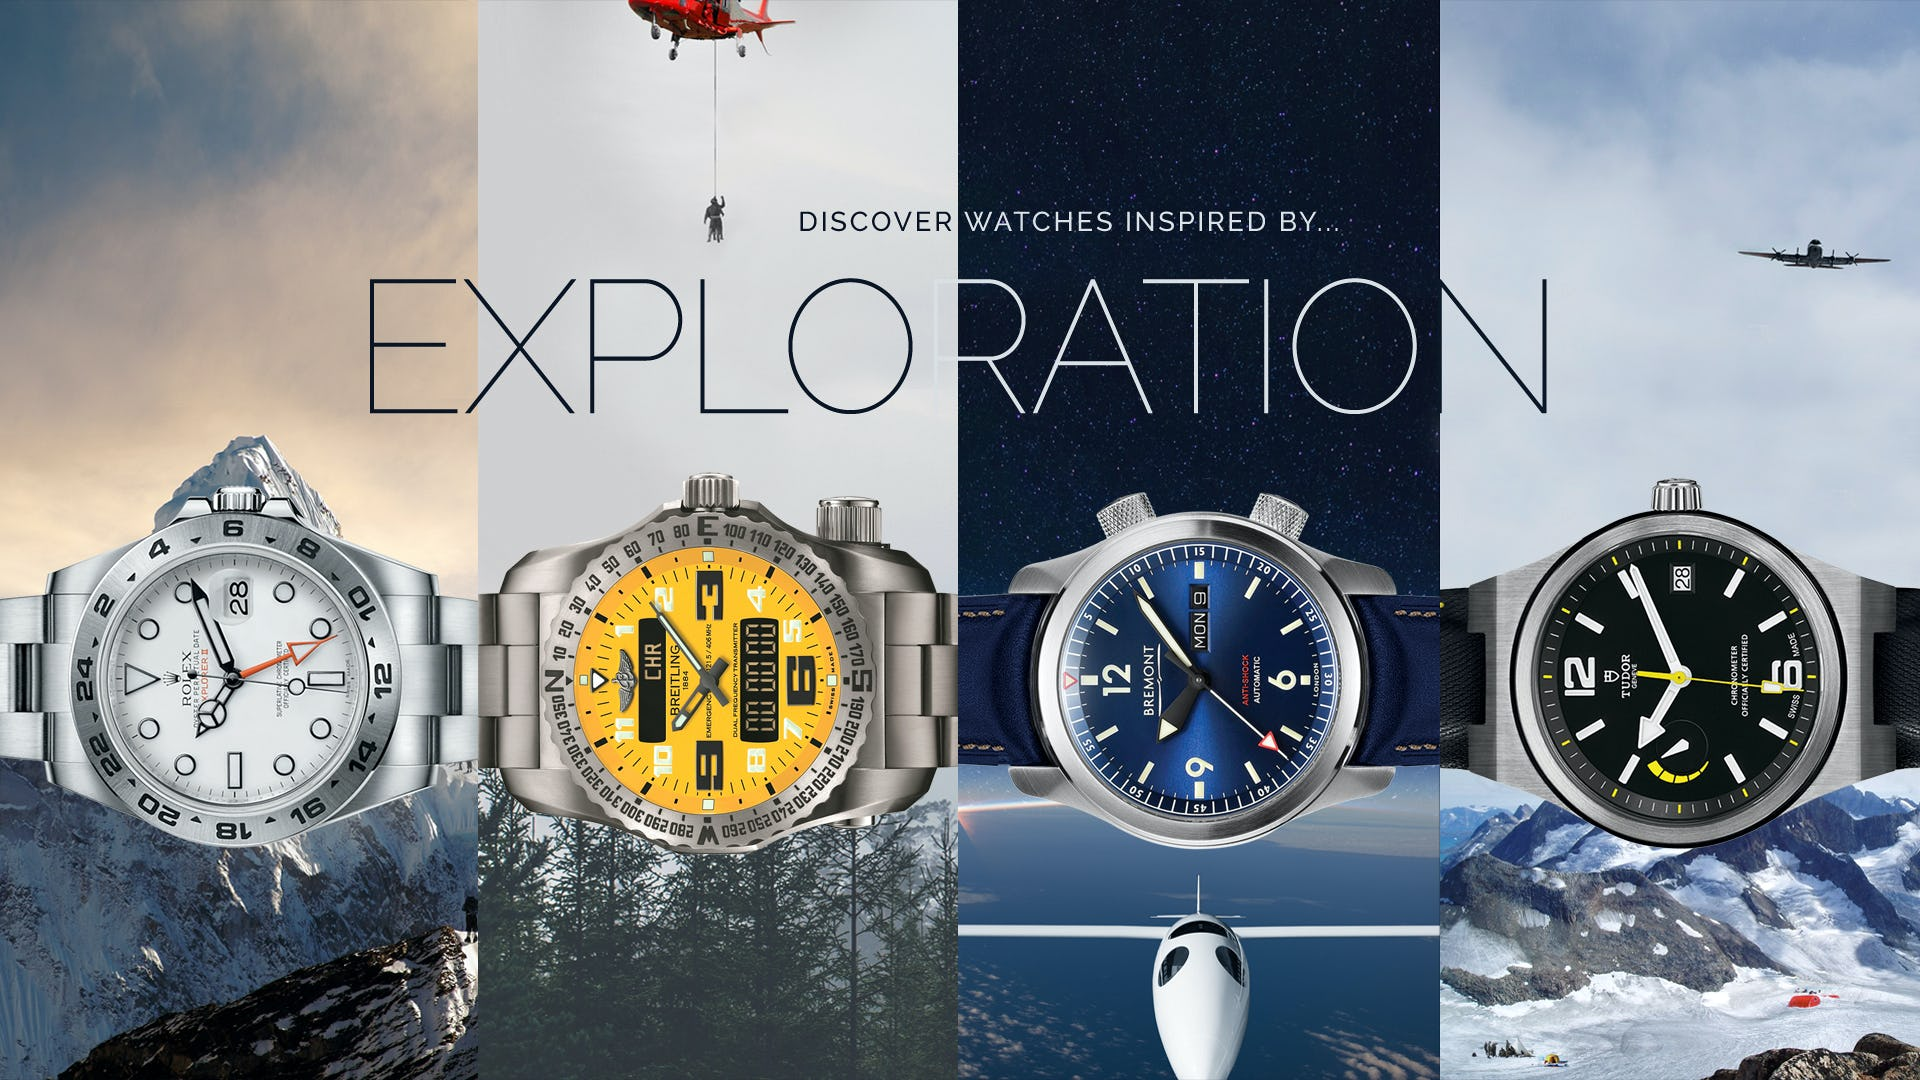 Watches Inspired by Exploration